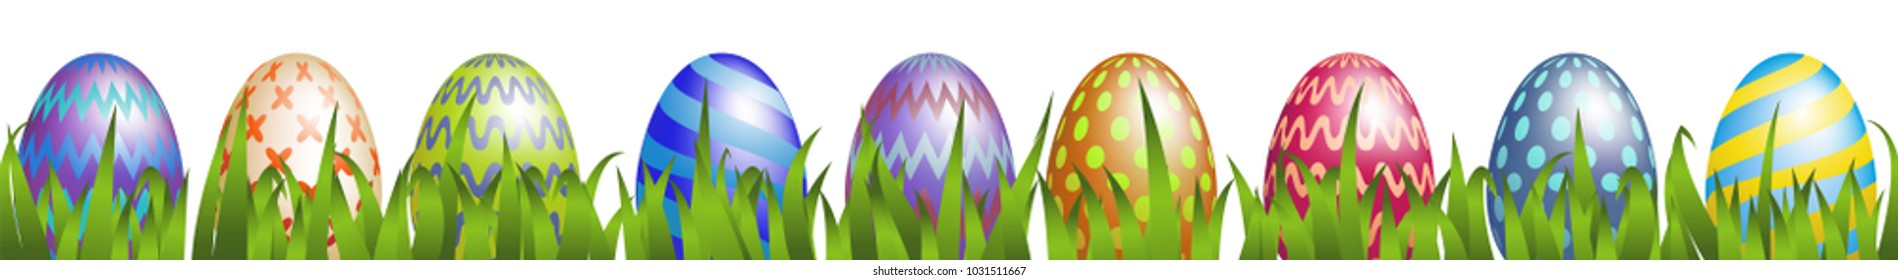 Colorful Easter eggs with grass isolated on white